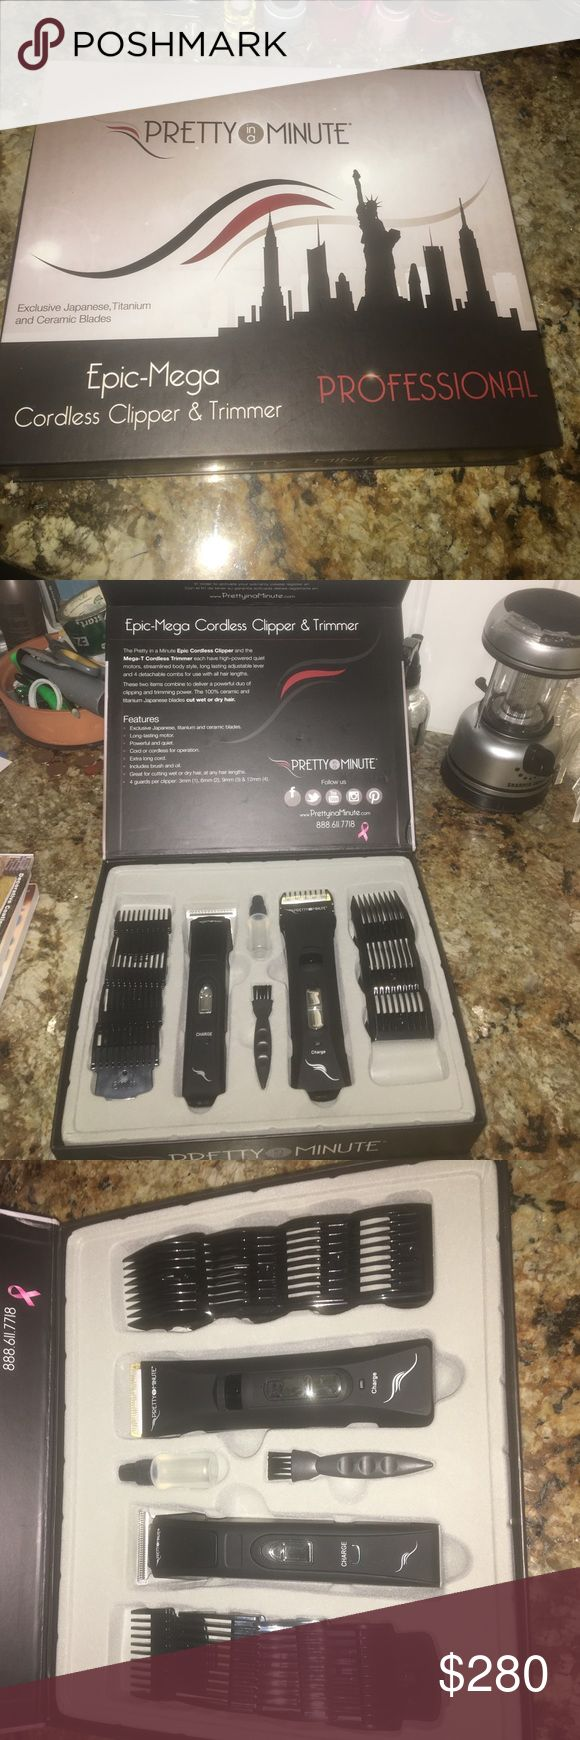 Epic-Mega cordless clipper & trimmer I am selling my Pretty in a Minute cordless clipper and trimmer combo set! Never been used, had it for a month then realized I won't ever use it! Price is negotiable!! pretty in a minute Accessories Hair Accessories